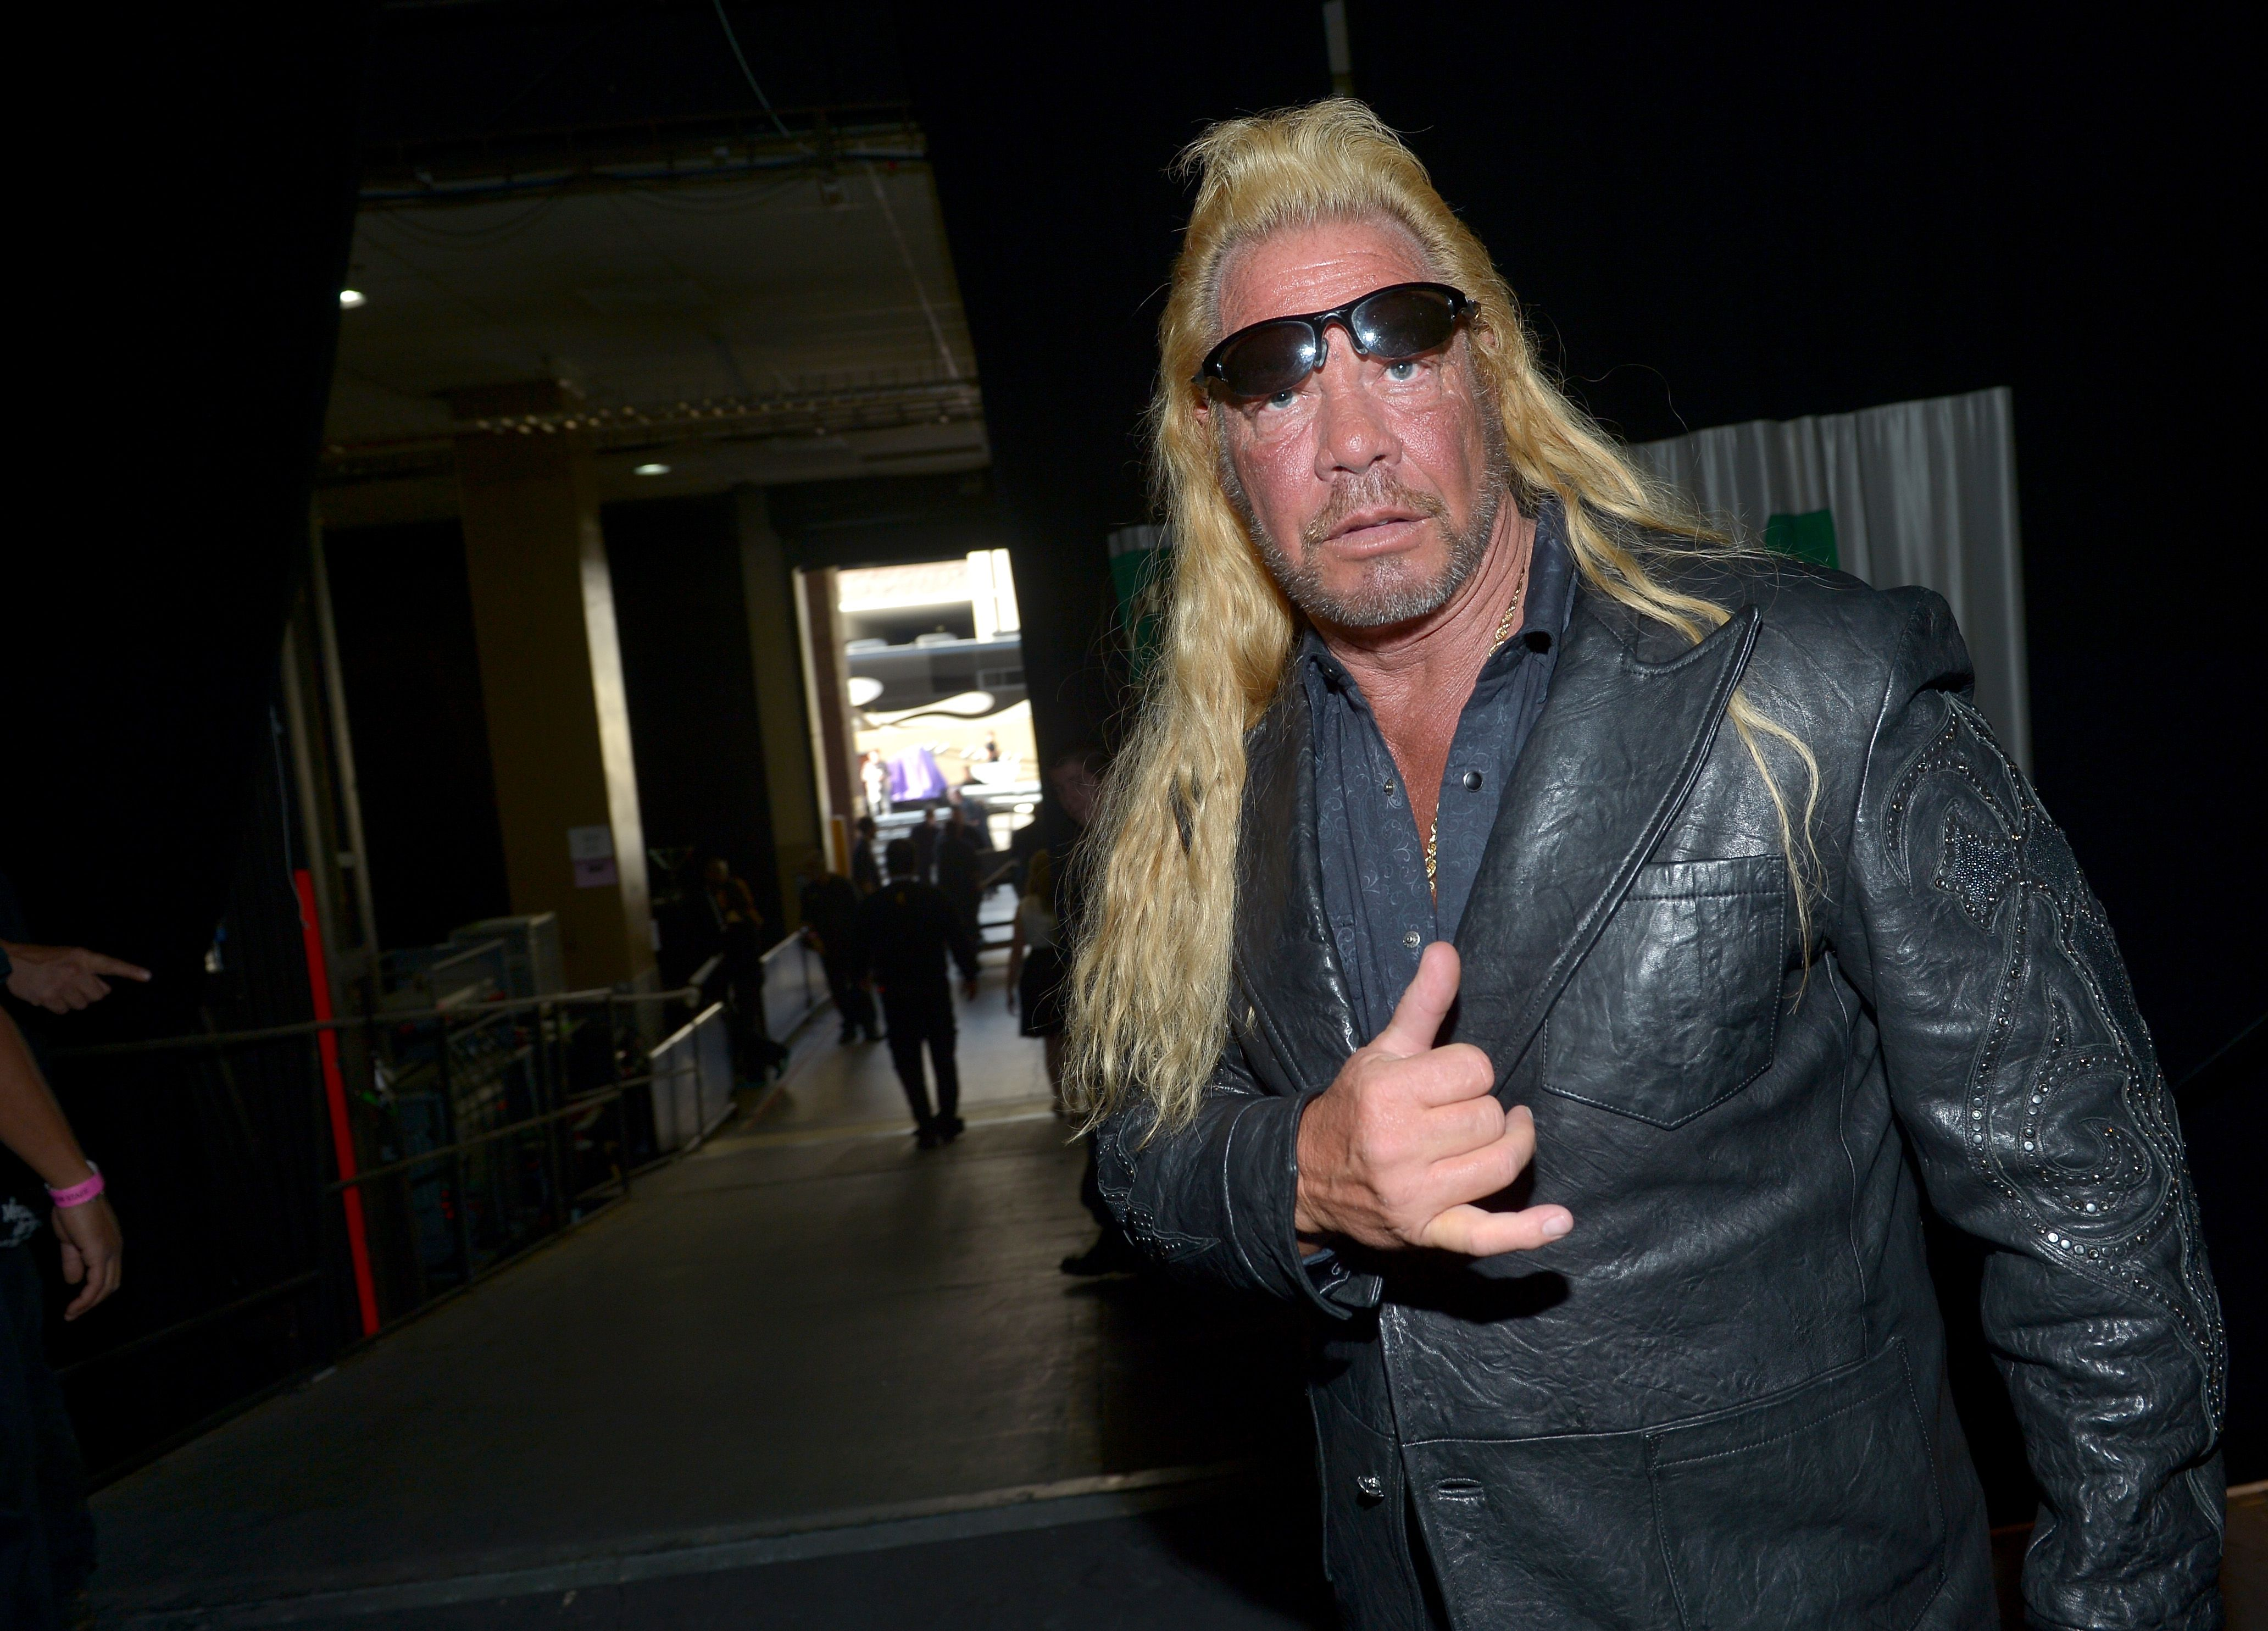 Dog the Bounty Hunter at the 48th Annual Academy of Country Music Awards at the MGM Grand Garden Arena on April 7, 2013   Photo: Getty Images